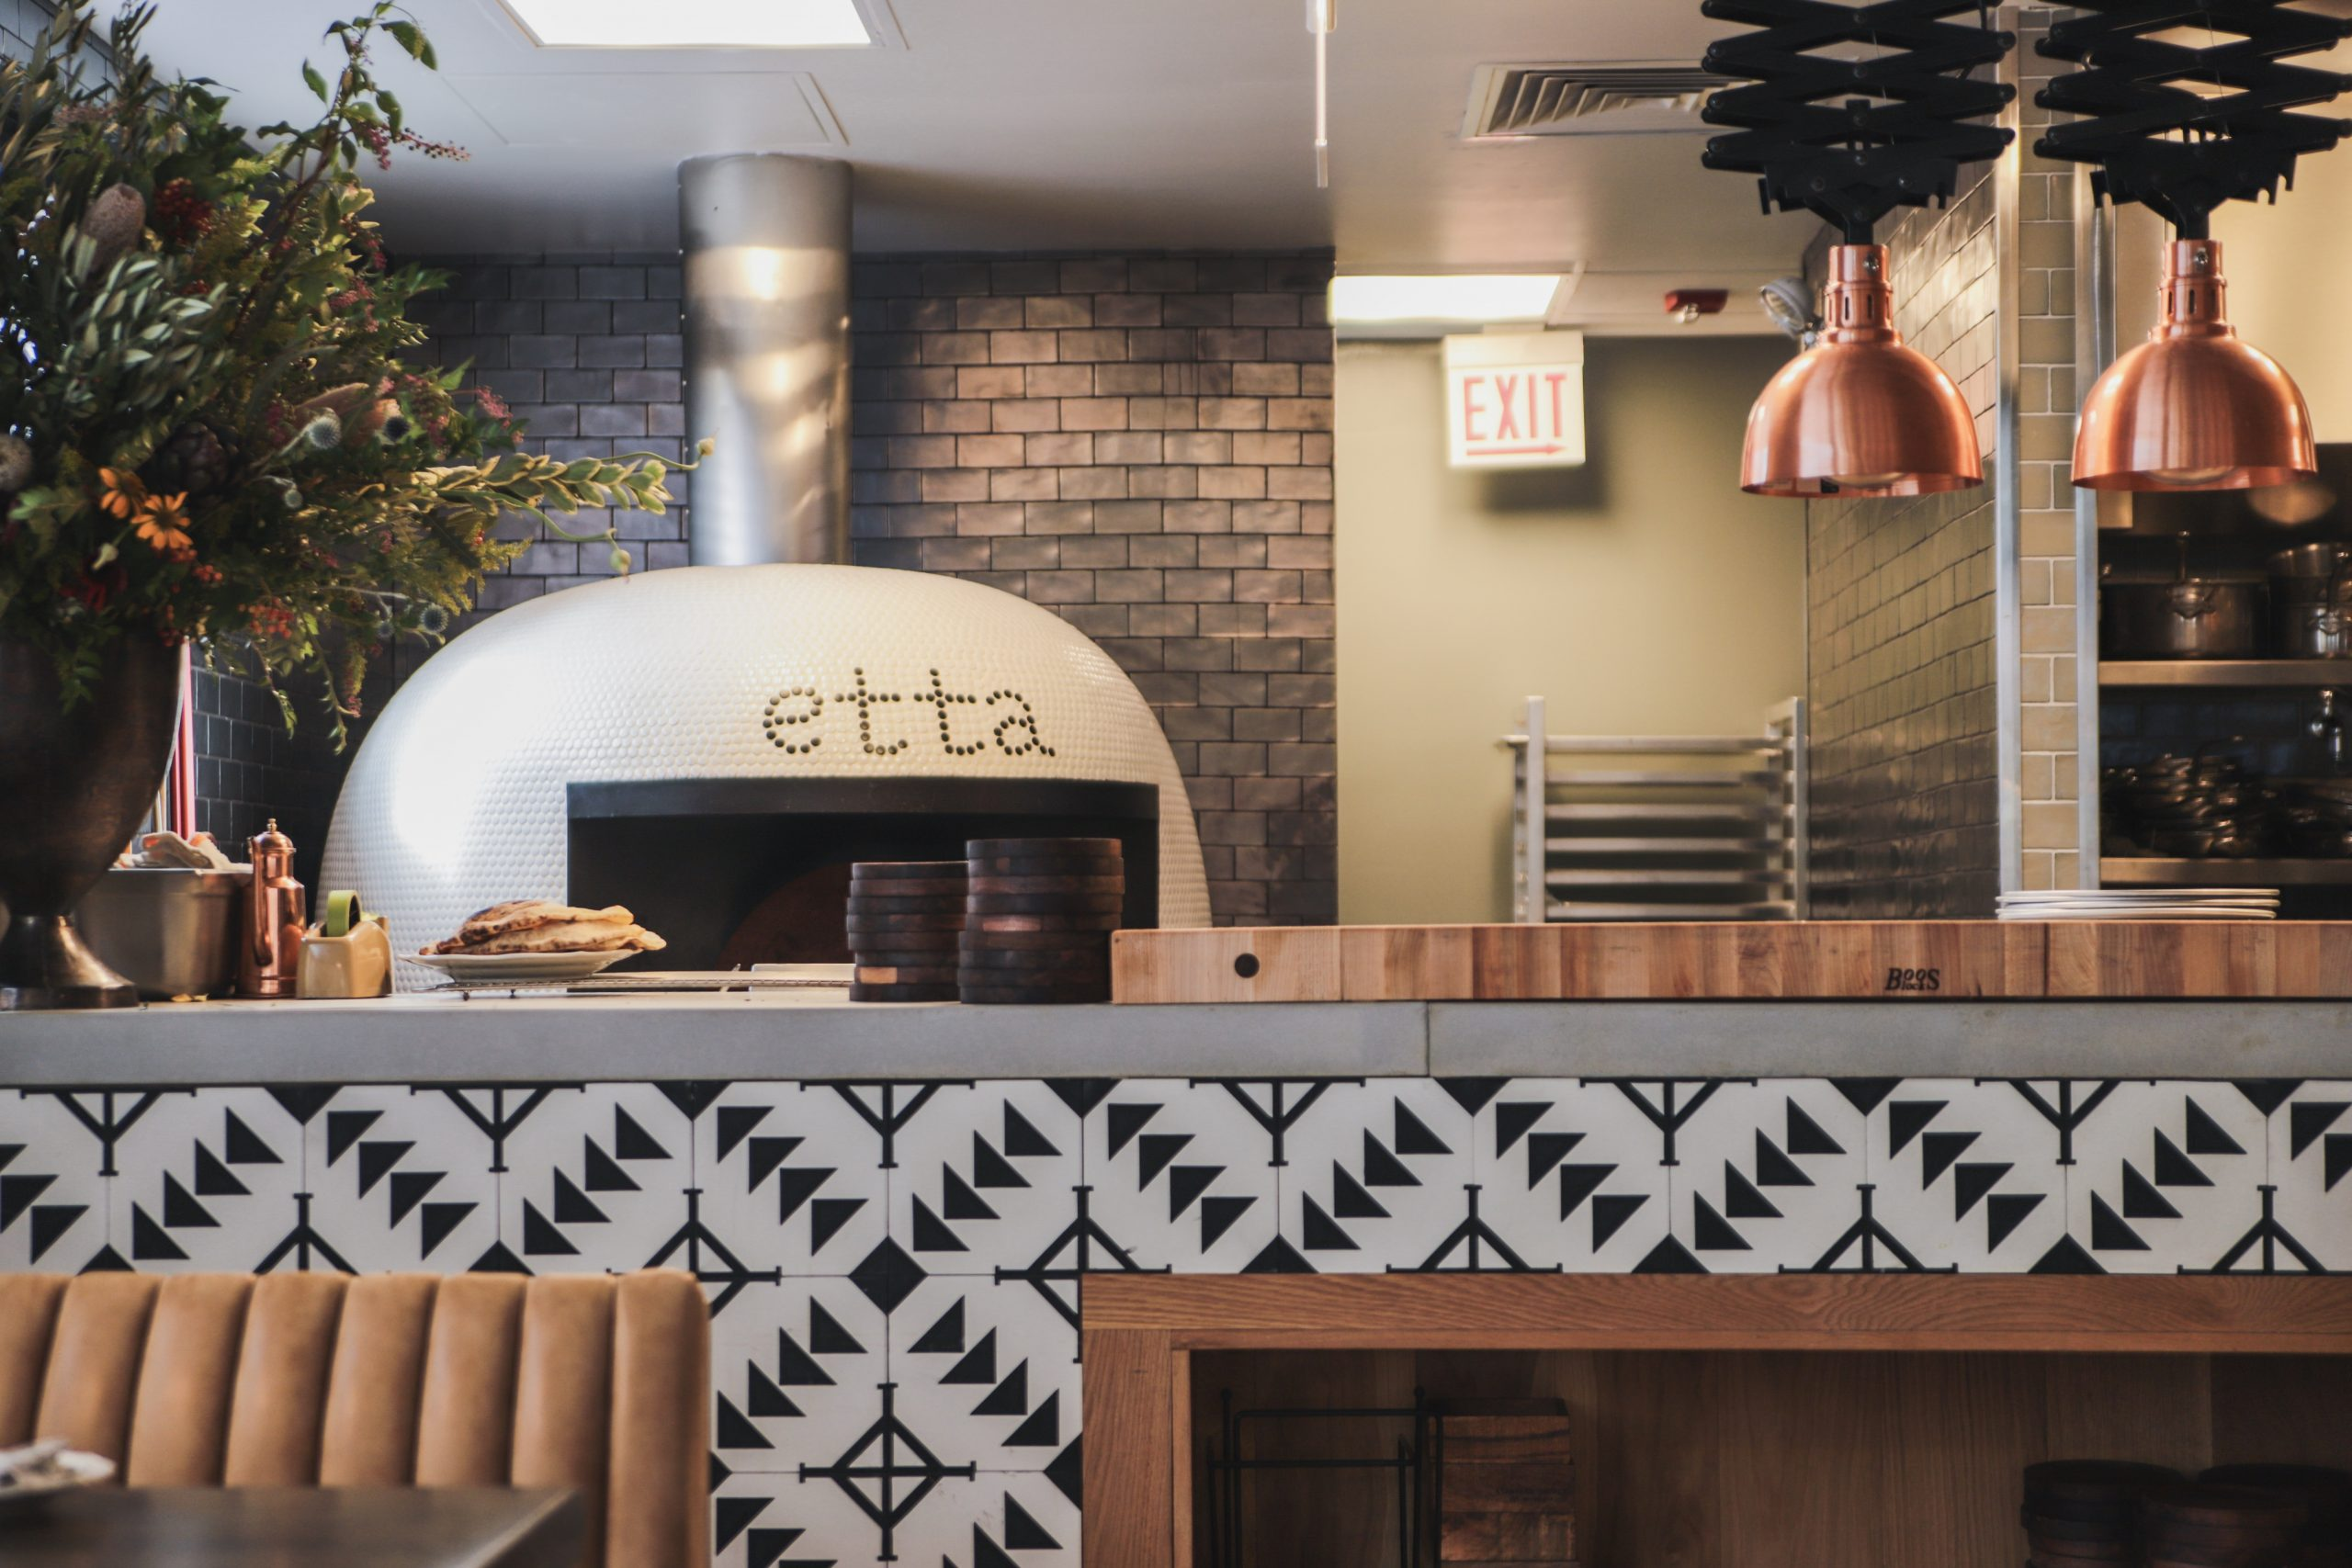 A side view of a wood-fired oven and bar seating at a new Italian restaurant that's about to open.